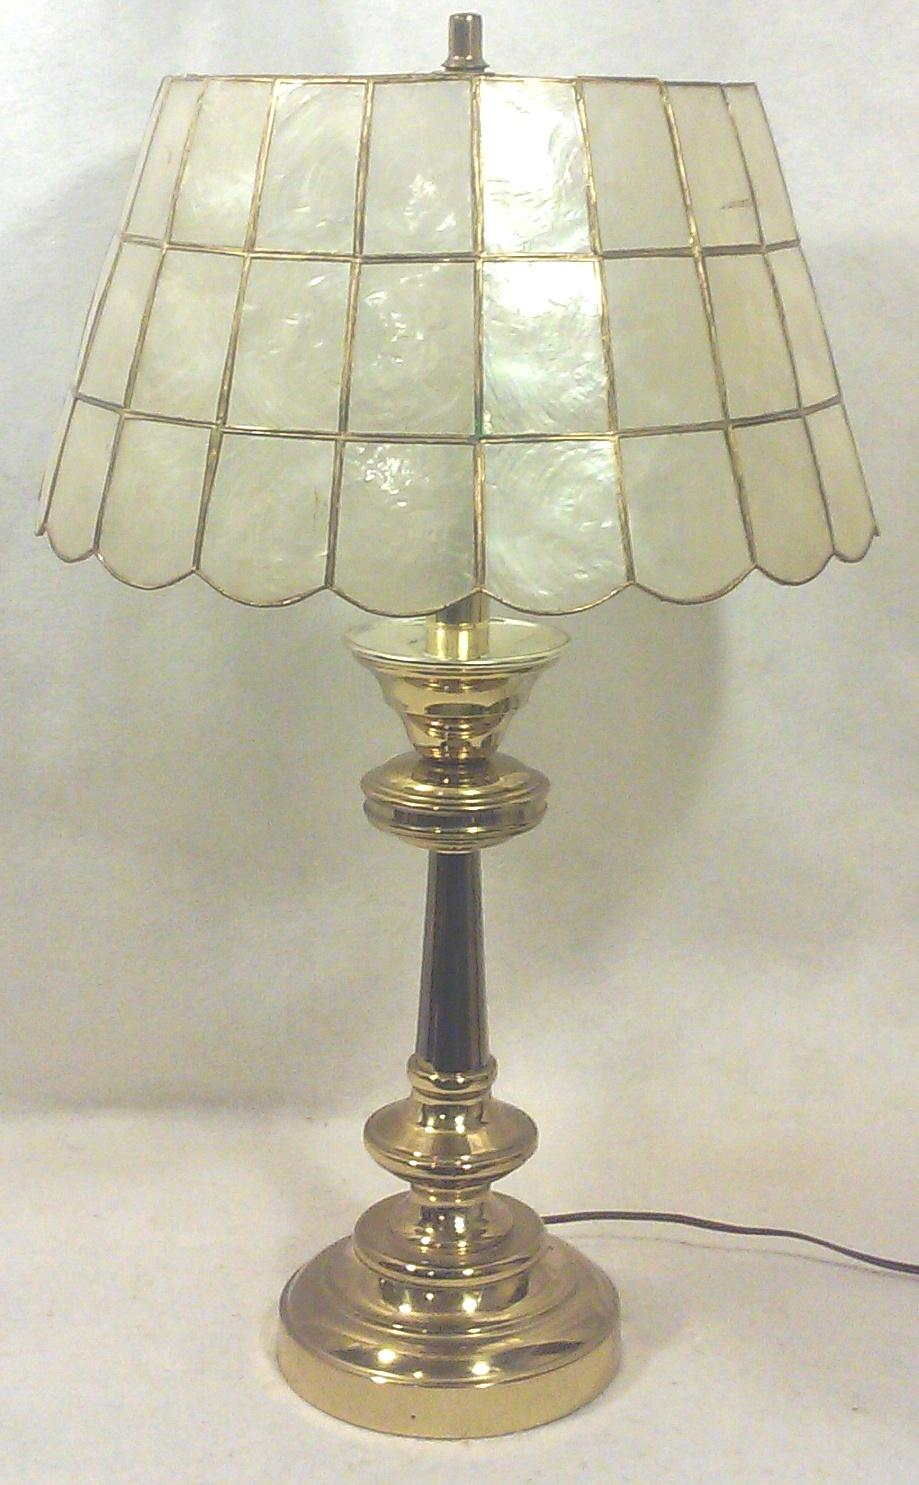 Marvelous Brass Table Lamp With Capiz Shell Shade   Image 5 Of 5